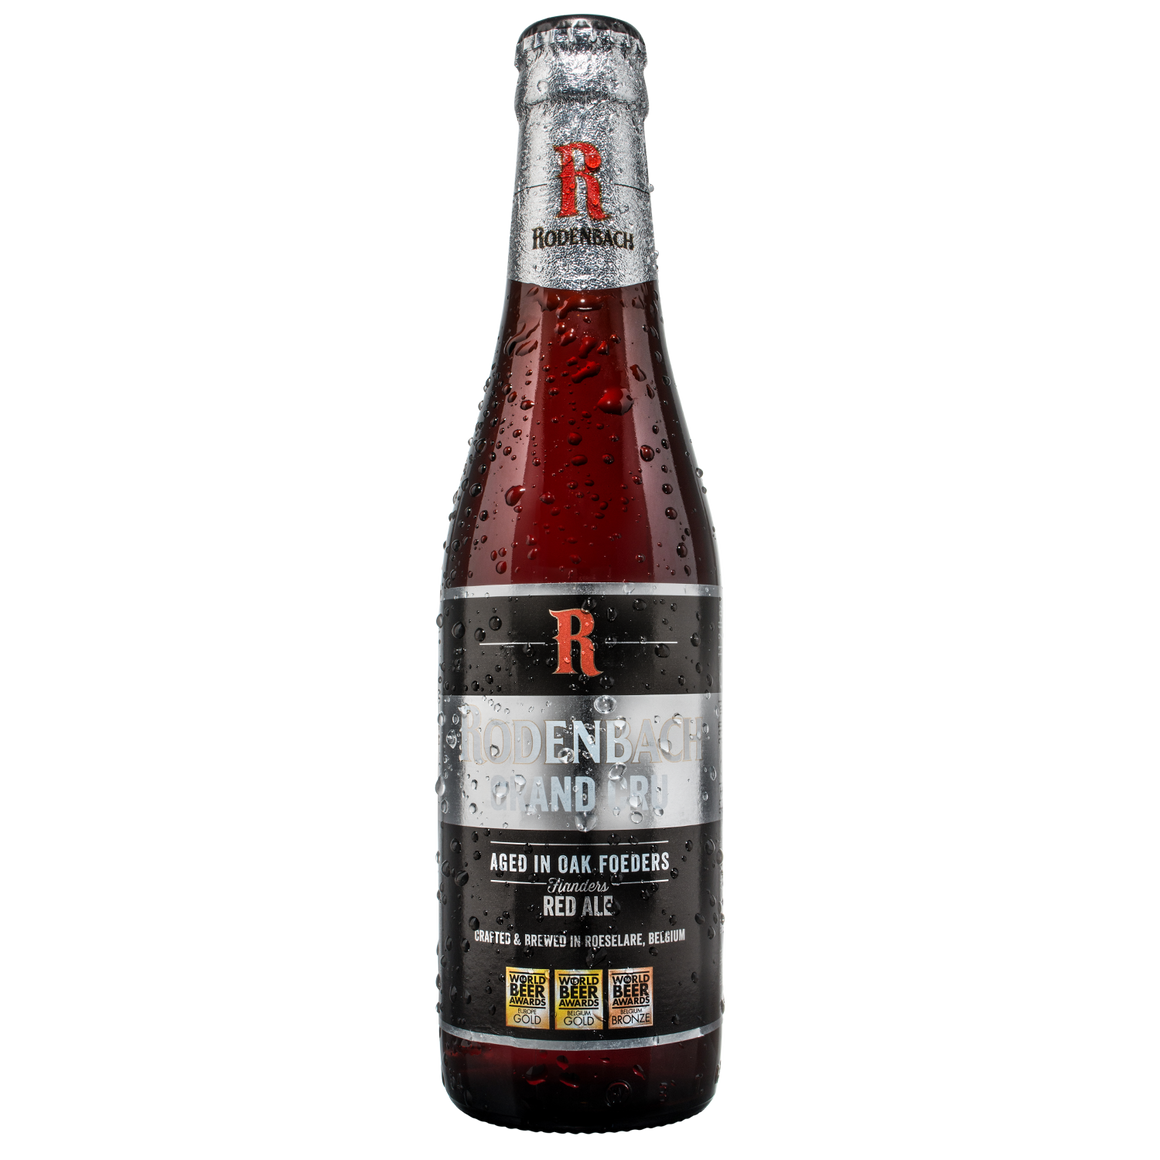 Rodenbach - Grand Cru - Flemish Red Ale - 330ml Bottle